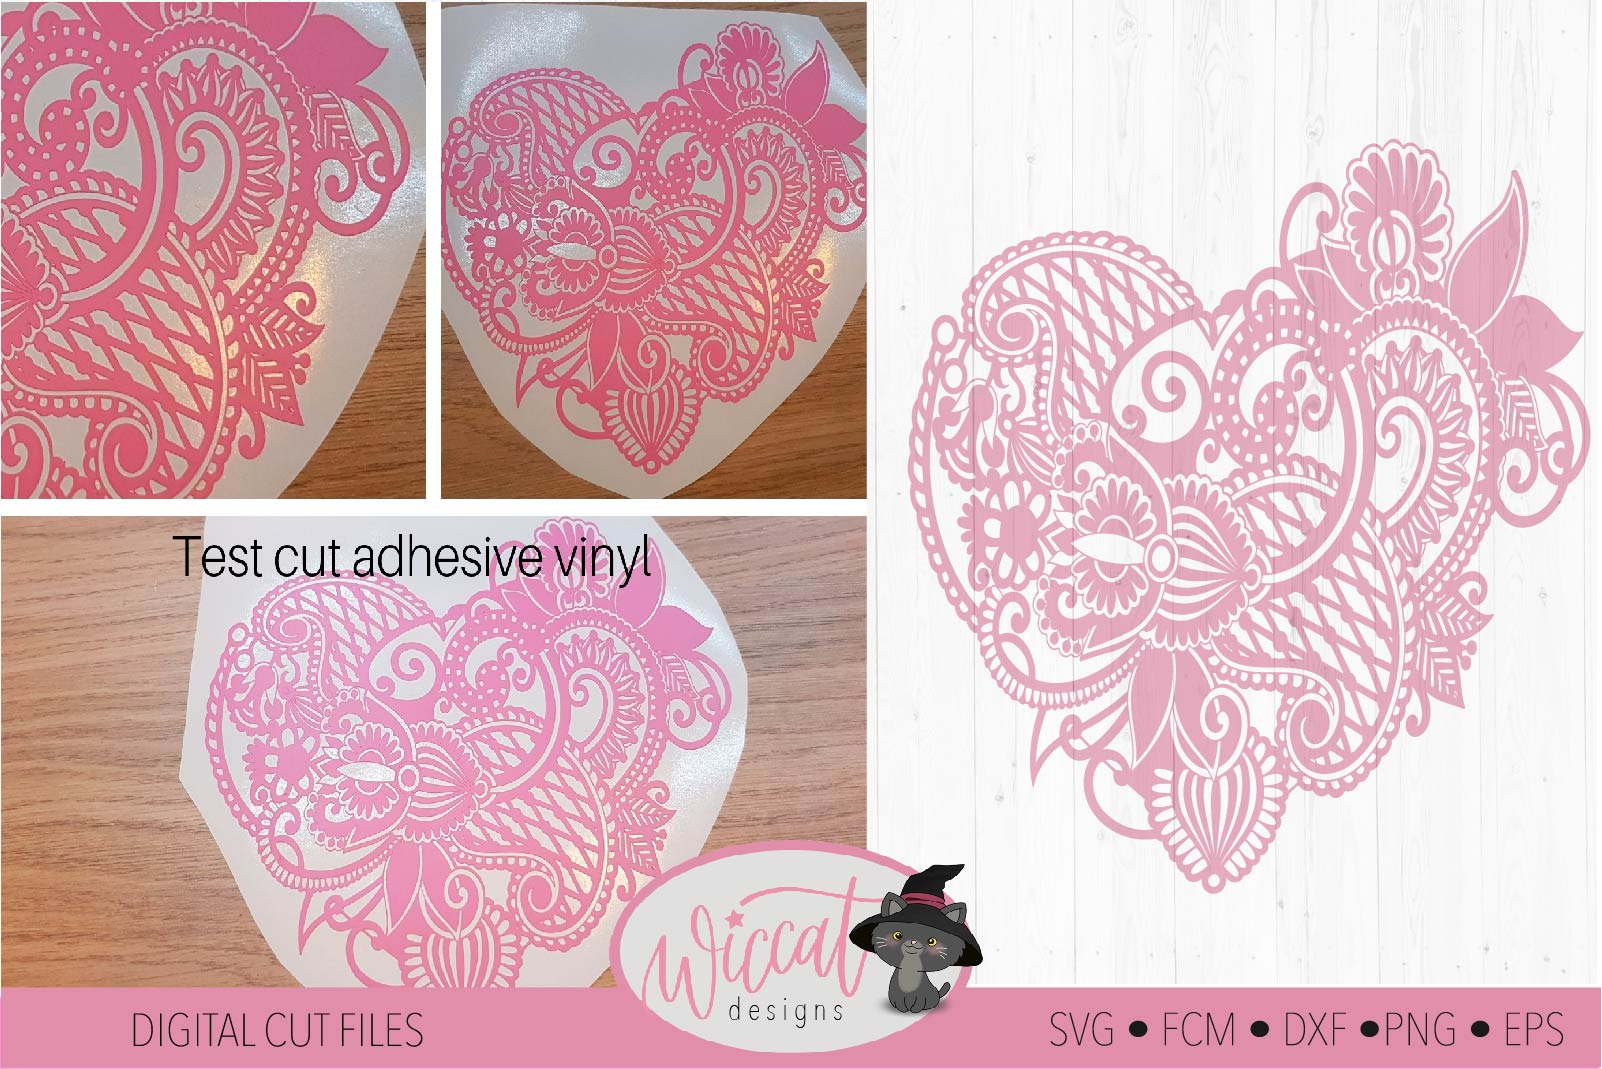 Paisley Heart, valentine doodle heart svg example image 2